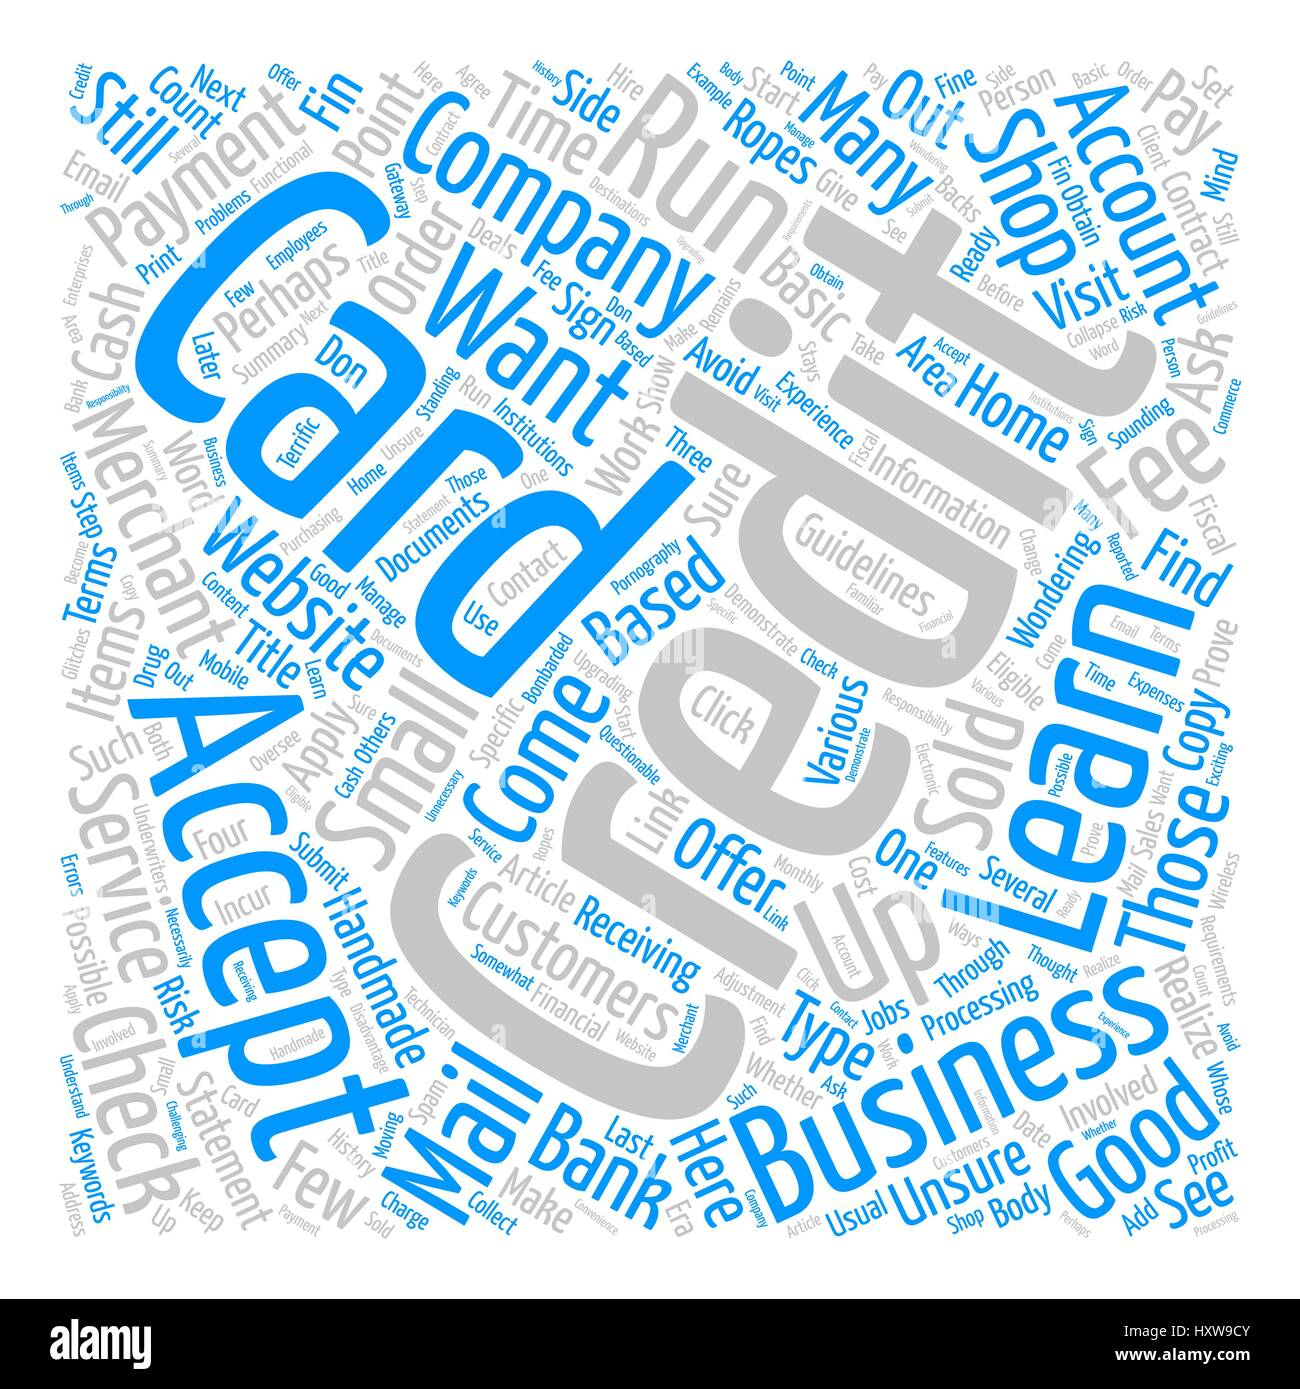 Accept Business Credit Cards Images - Free Business Cards